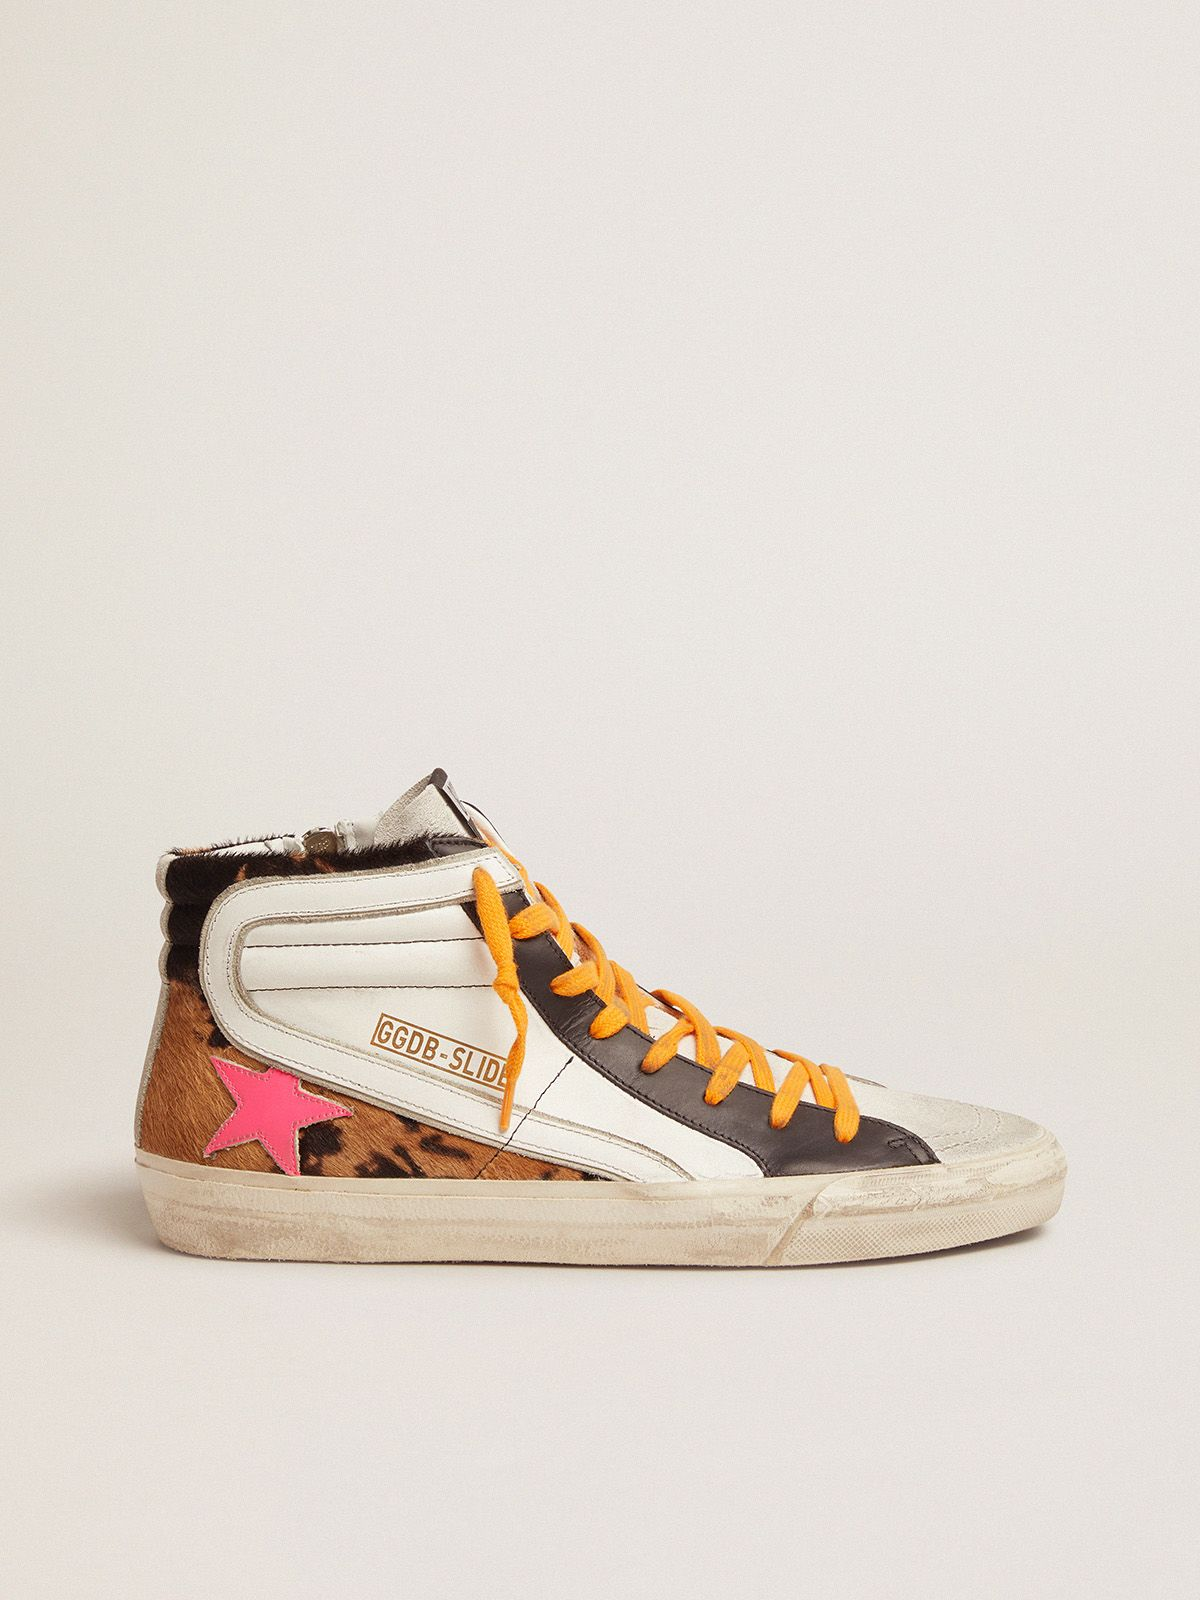 Slide sneakers in pony skin, leather and suede with orange laces and a fuchsia star